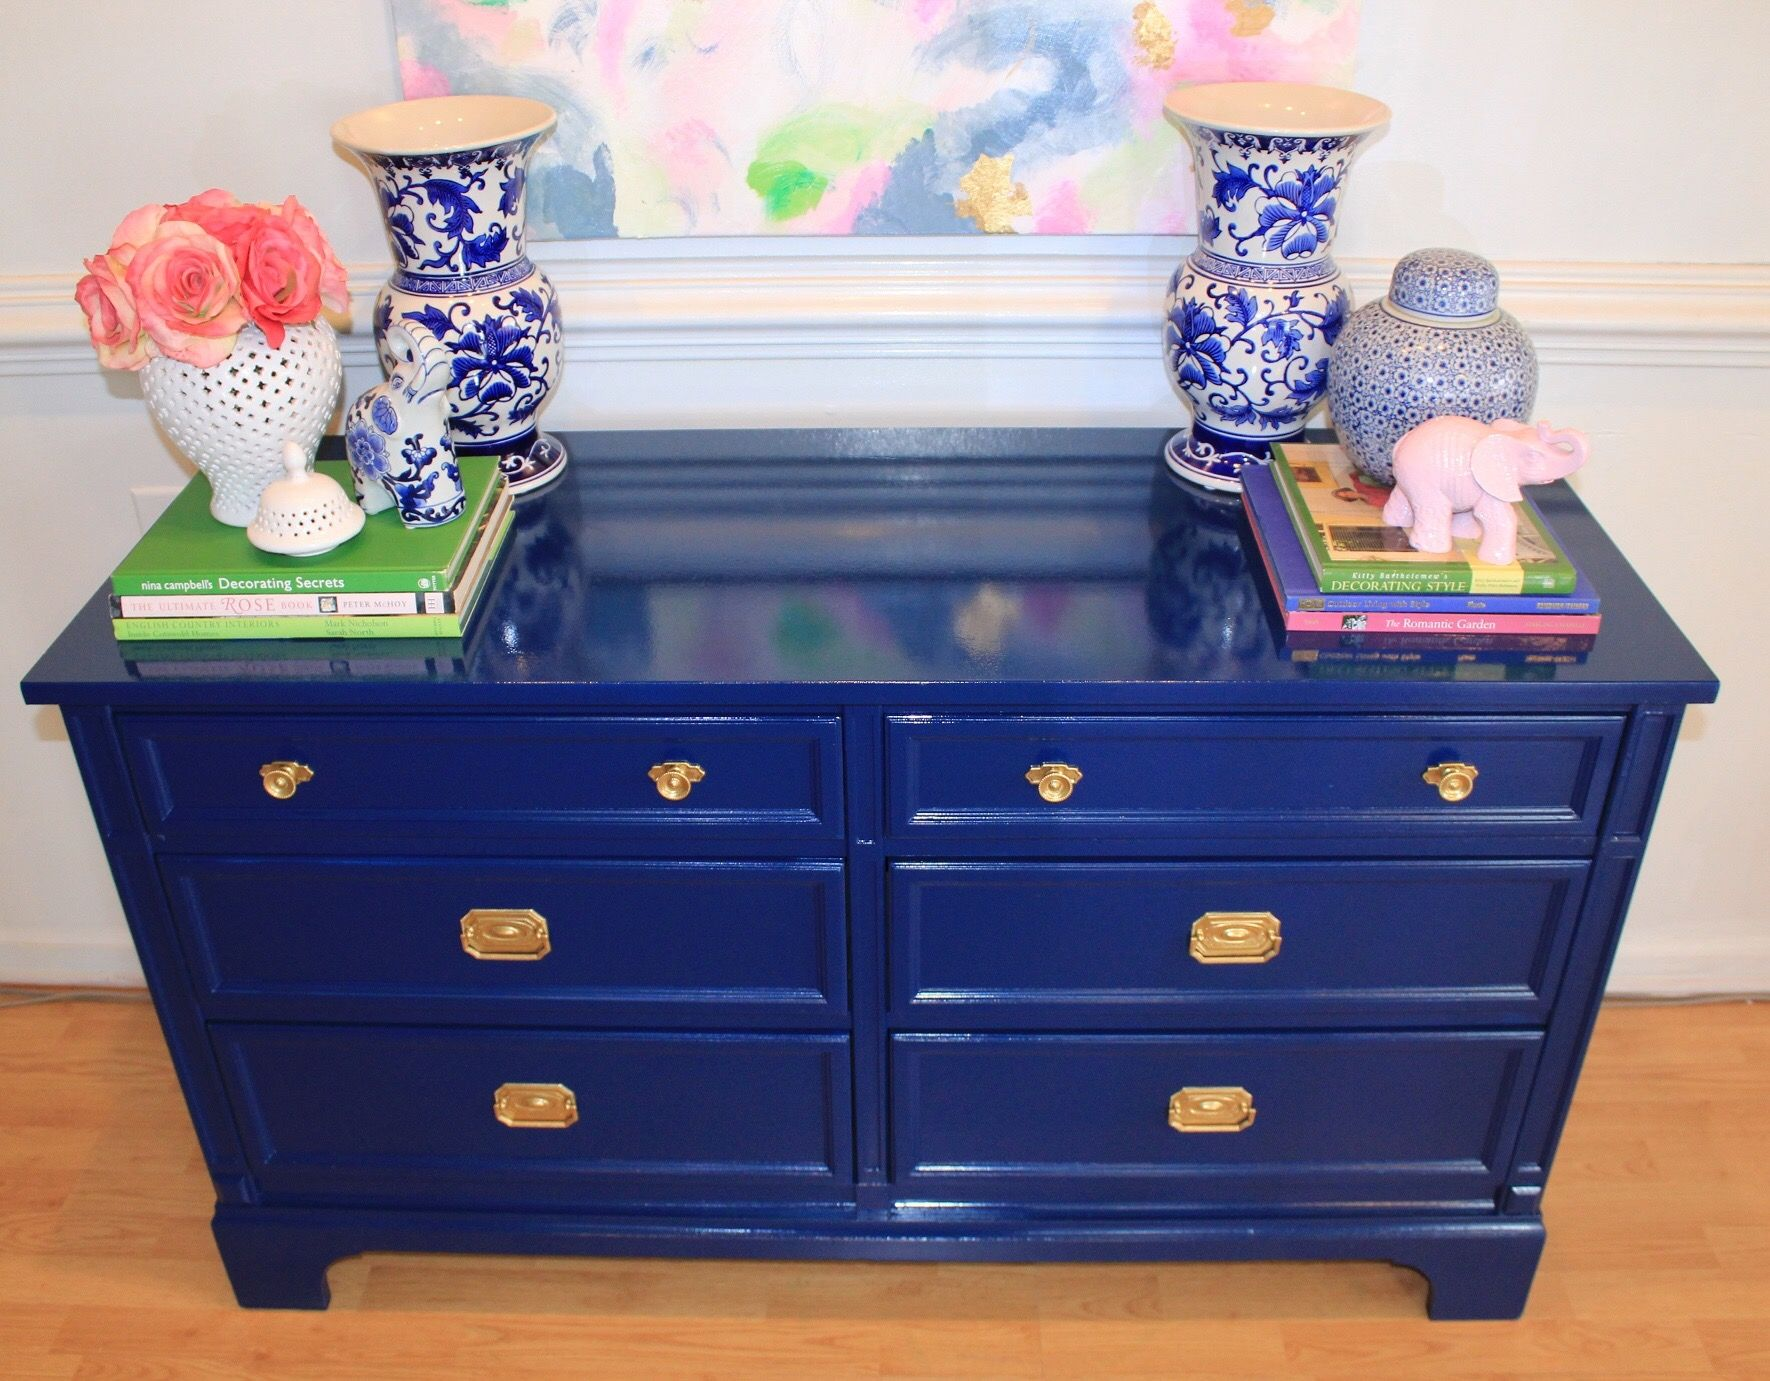 Navy Blue Lacquered High Gloss Dresser Or Buffet Styled With Chinoiserie Chic Decor Dresser Decor Bedroom Chinoiserie Dresser Decor [ 1381 x 1770 Pixel ]